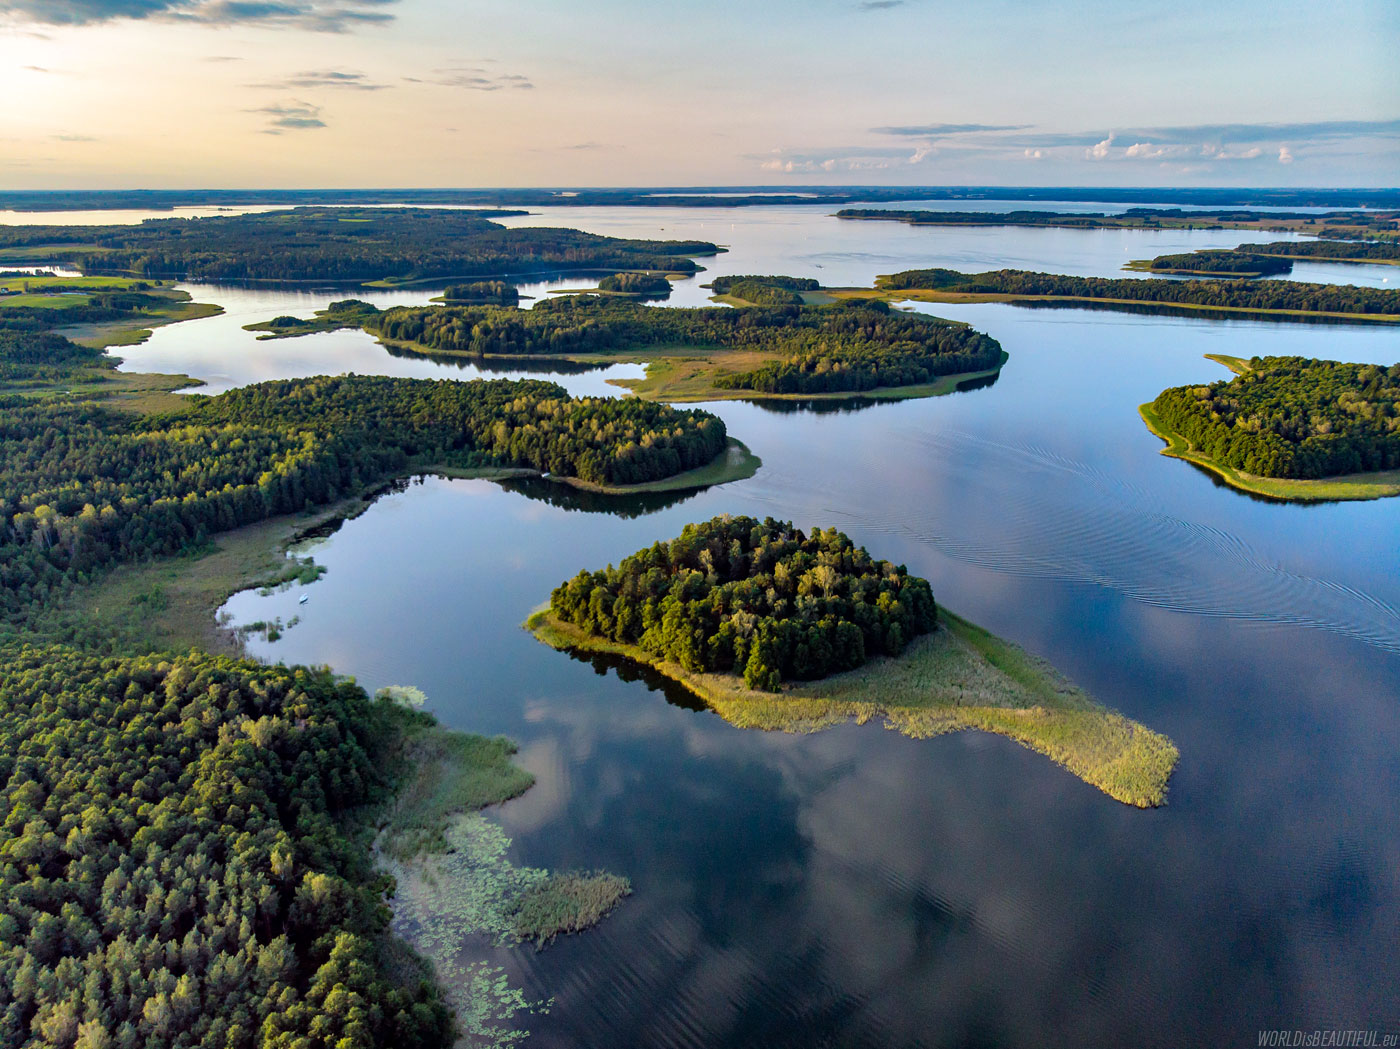 Lake Kisajno, Masuria Poland